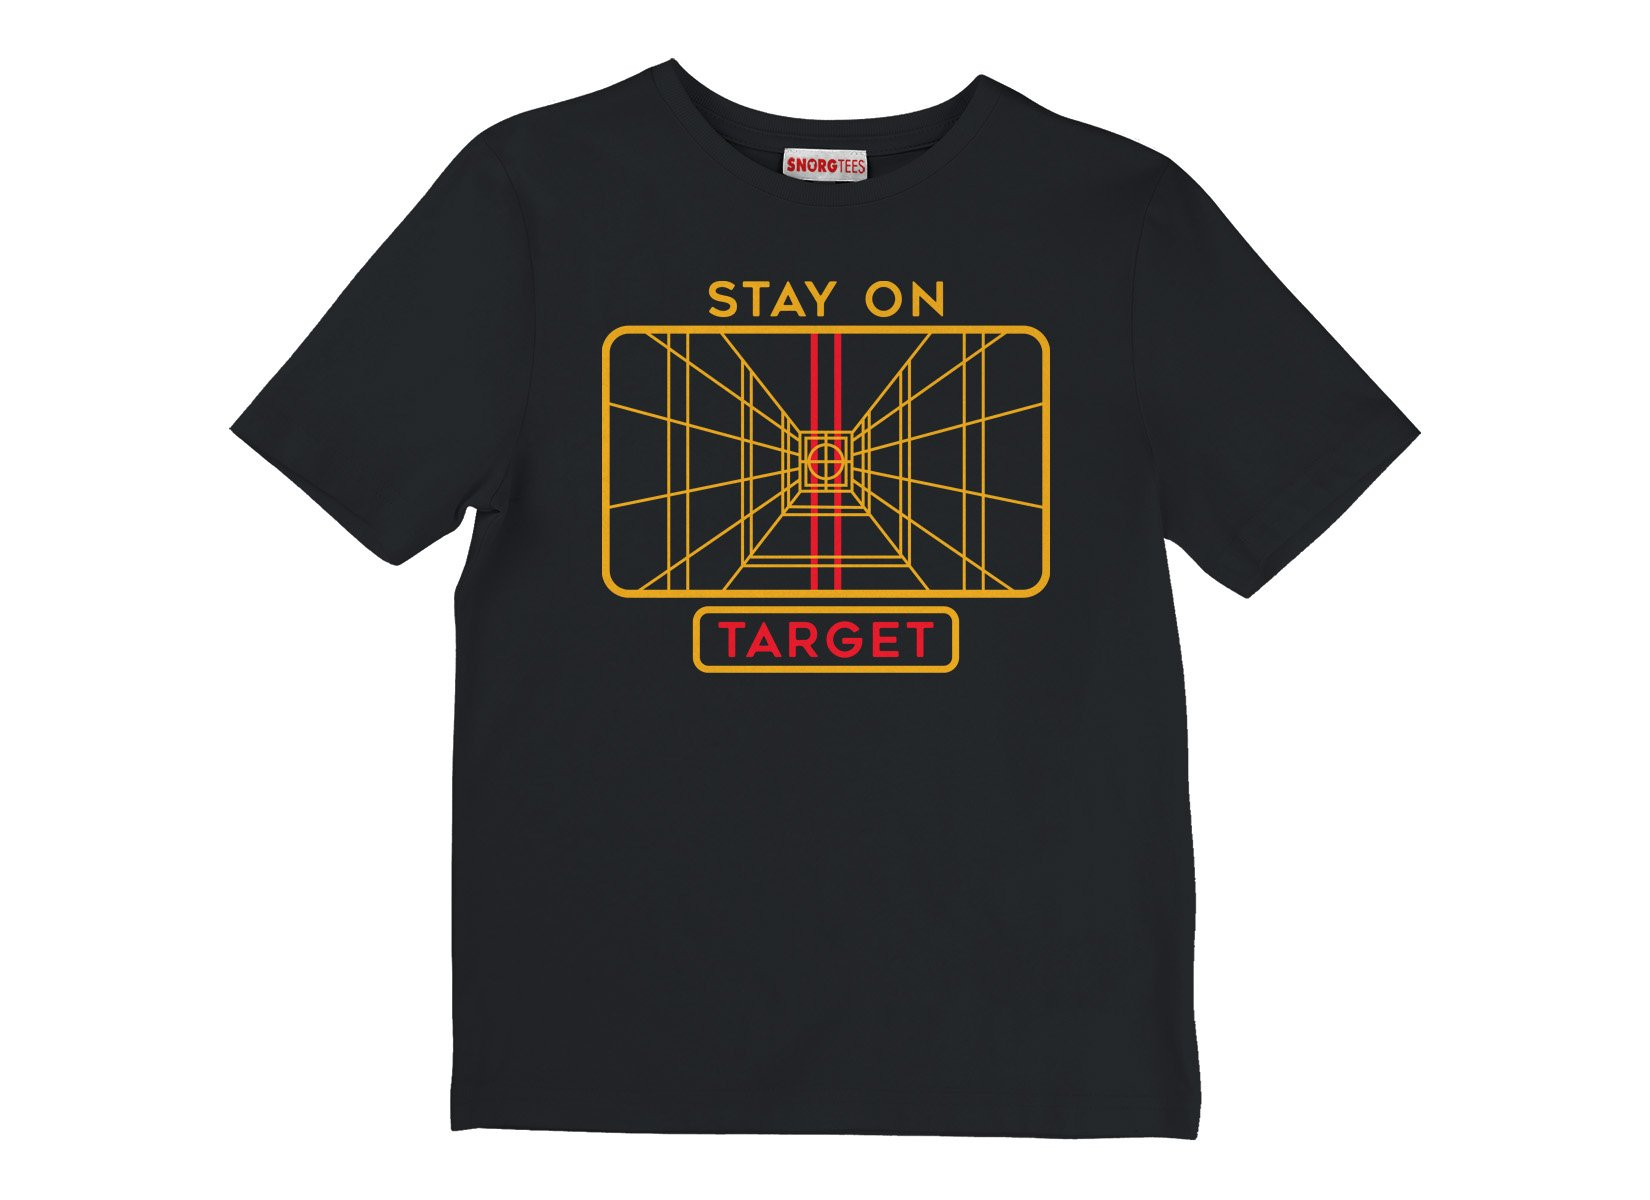 Stay On Target on Kids T-Shirt